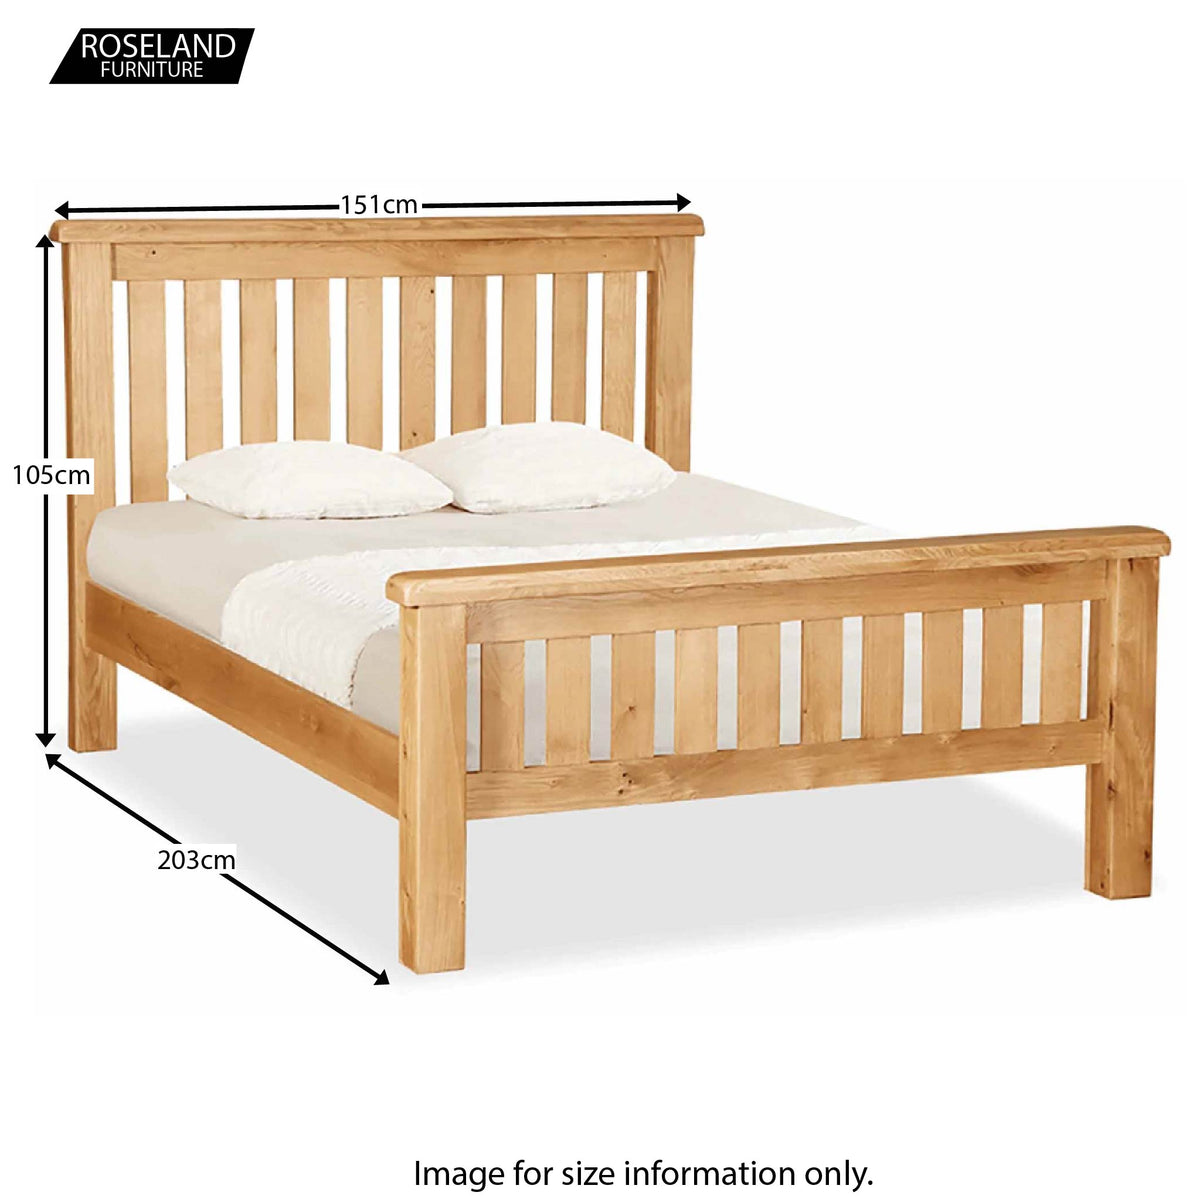 Zelah Oak Slatted 4'6 Double Bed - Size Guide